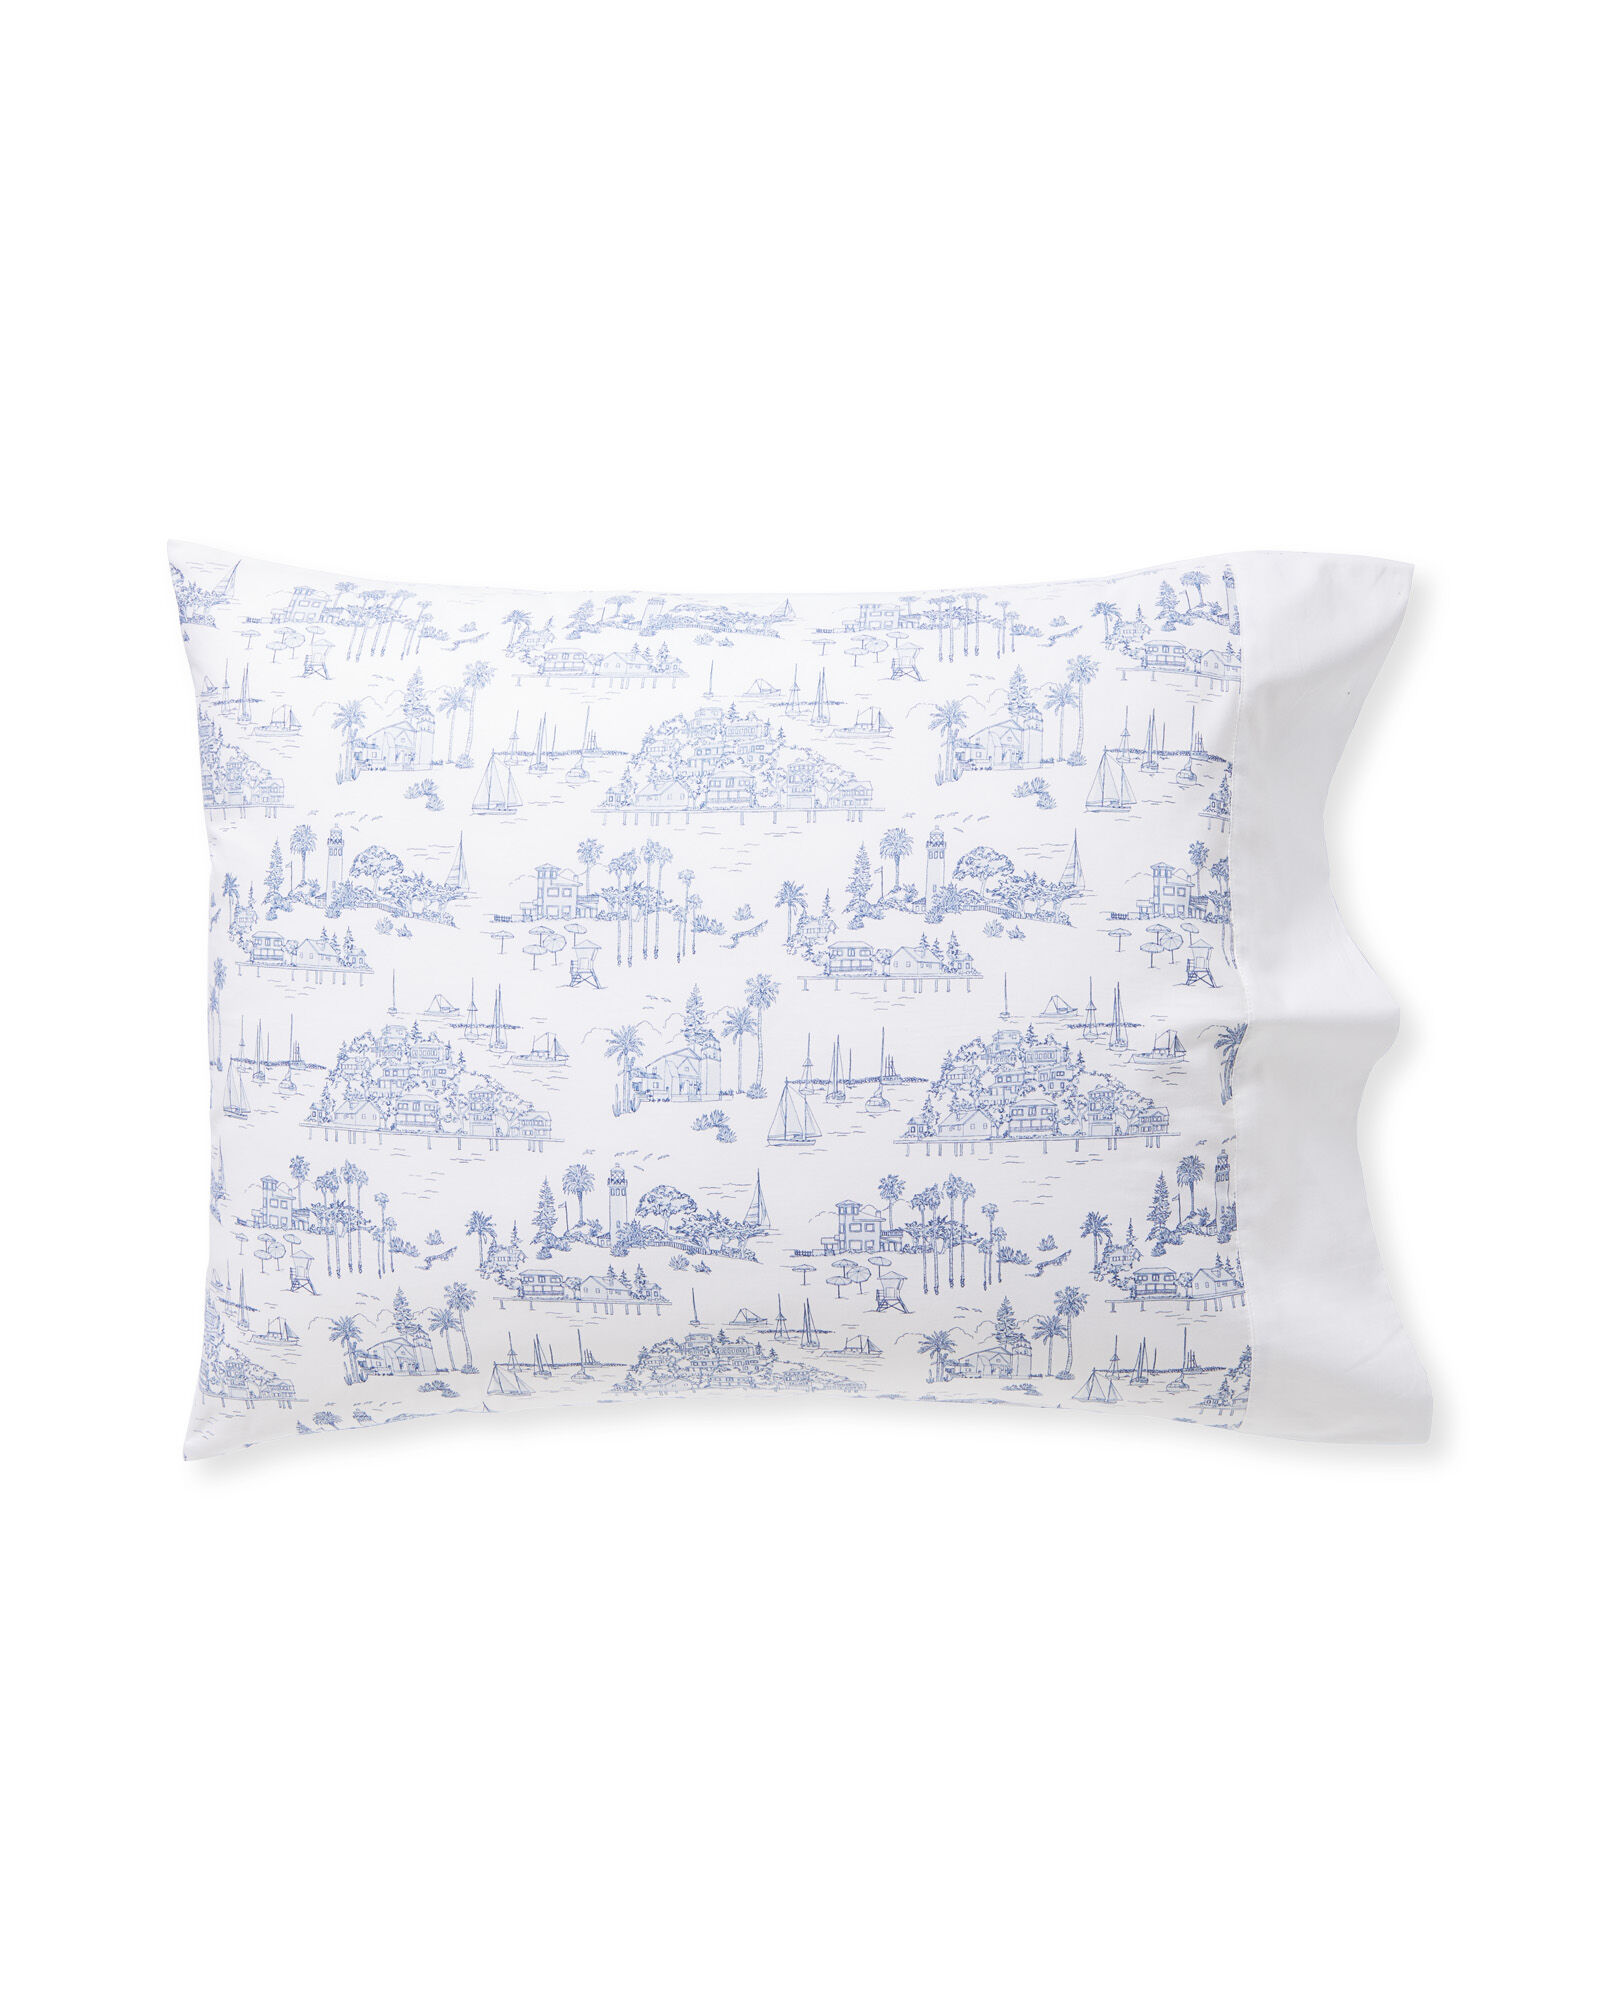 Seahaven Pillowcases (Set of 2), French Blue